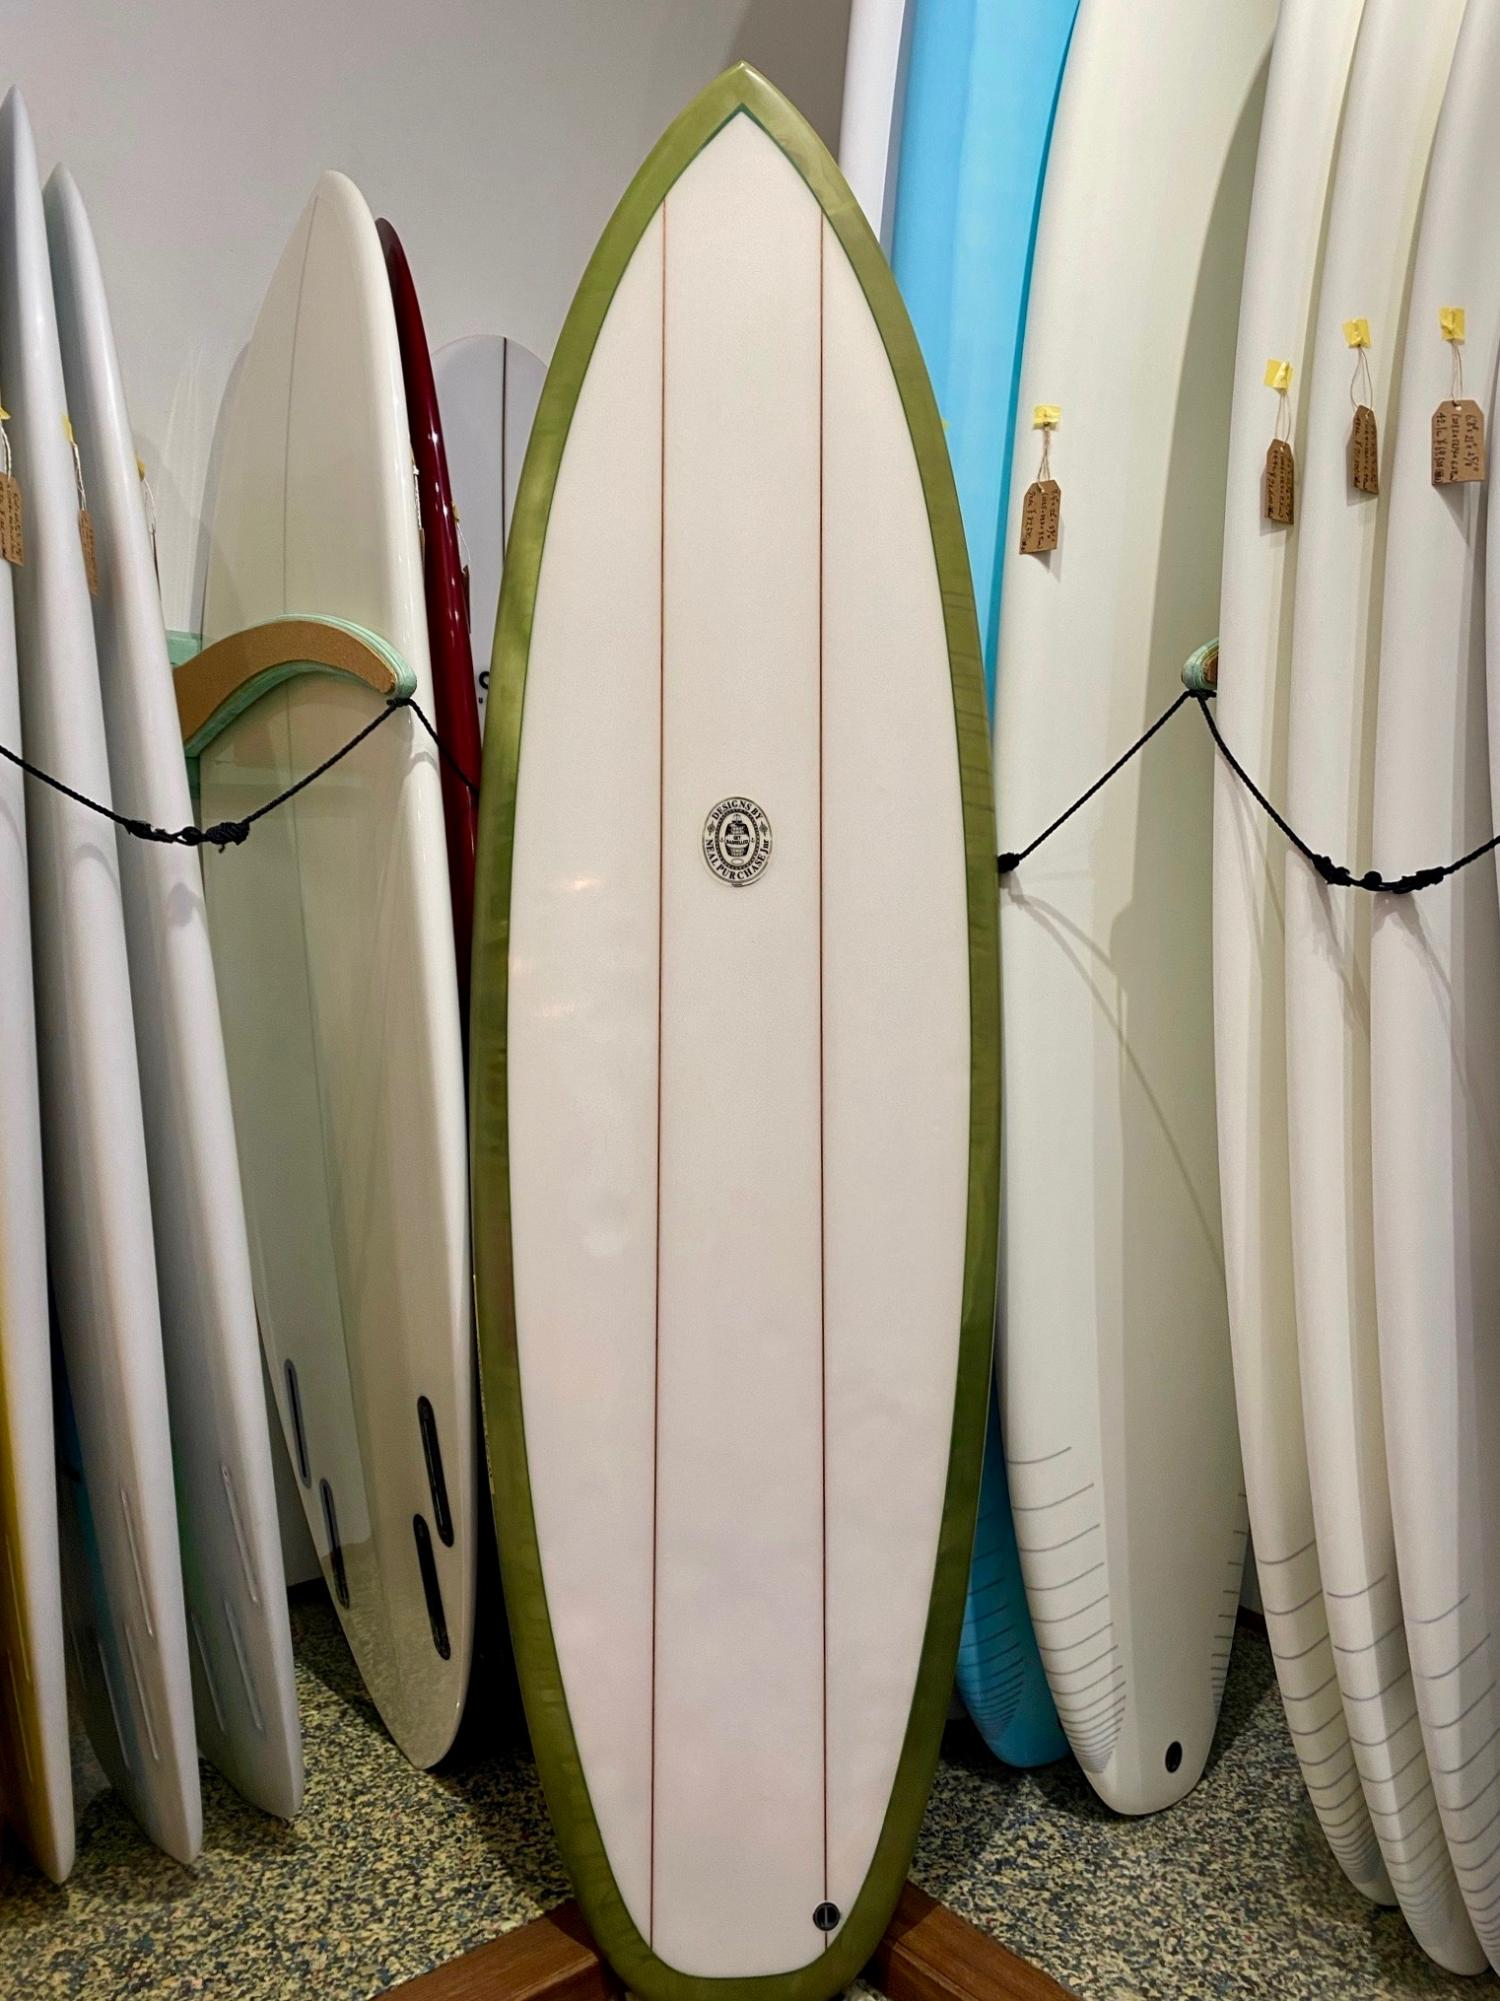 USED BOARDS DUO 5.8 [Neal Purchase Jnr Surfboards]